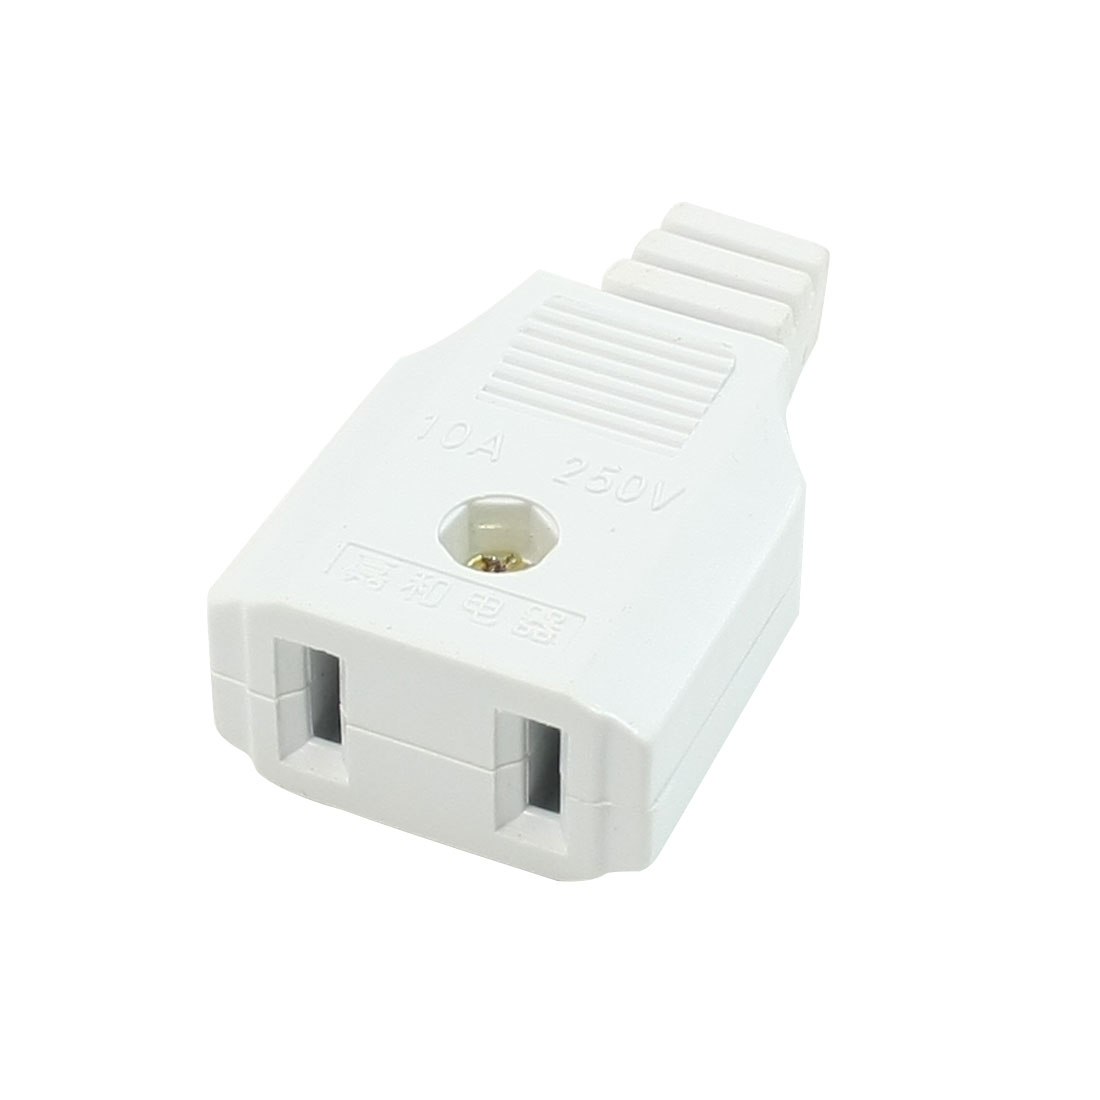 US Plug Plastic Housing 6x4.5mm Wire Hole Socket 250V 10A